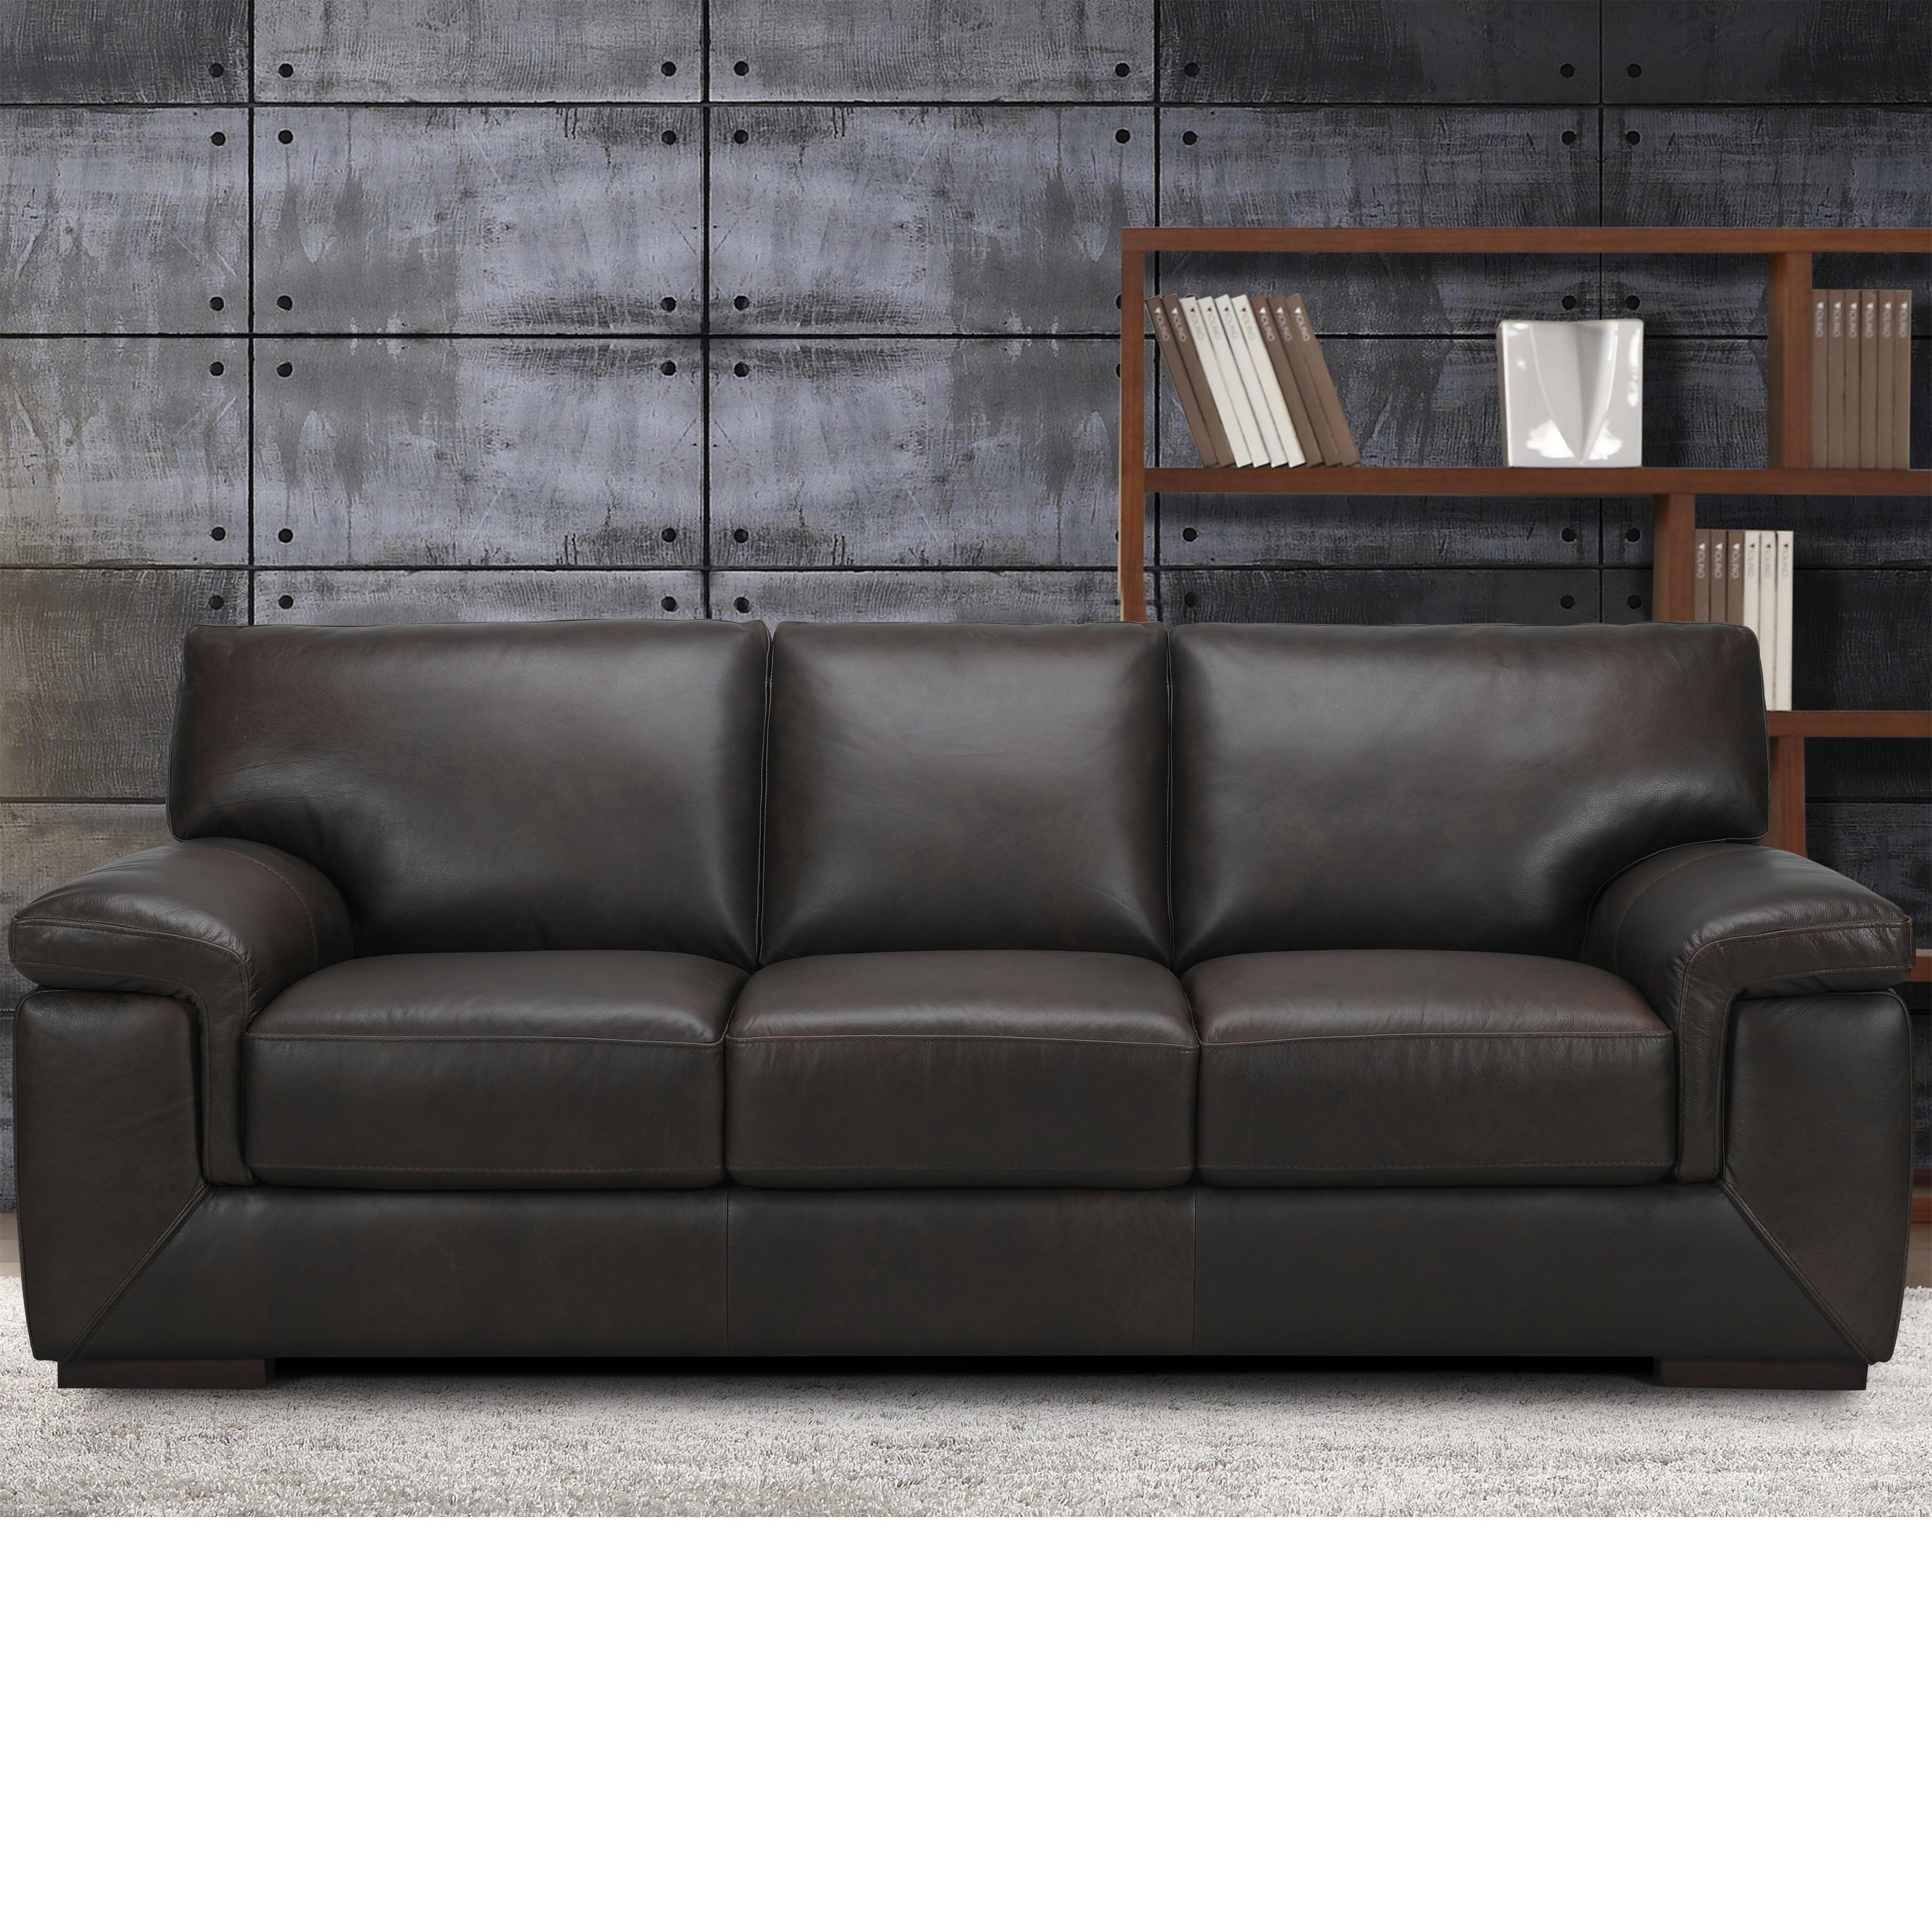 Violino 3576 Casual Sofa With Block Feet And Pillow Top Arms Fmg